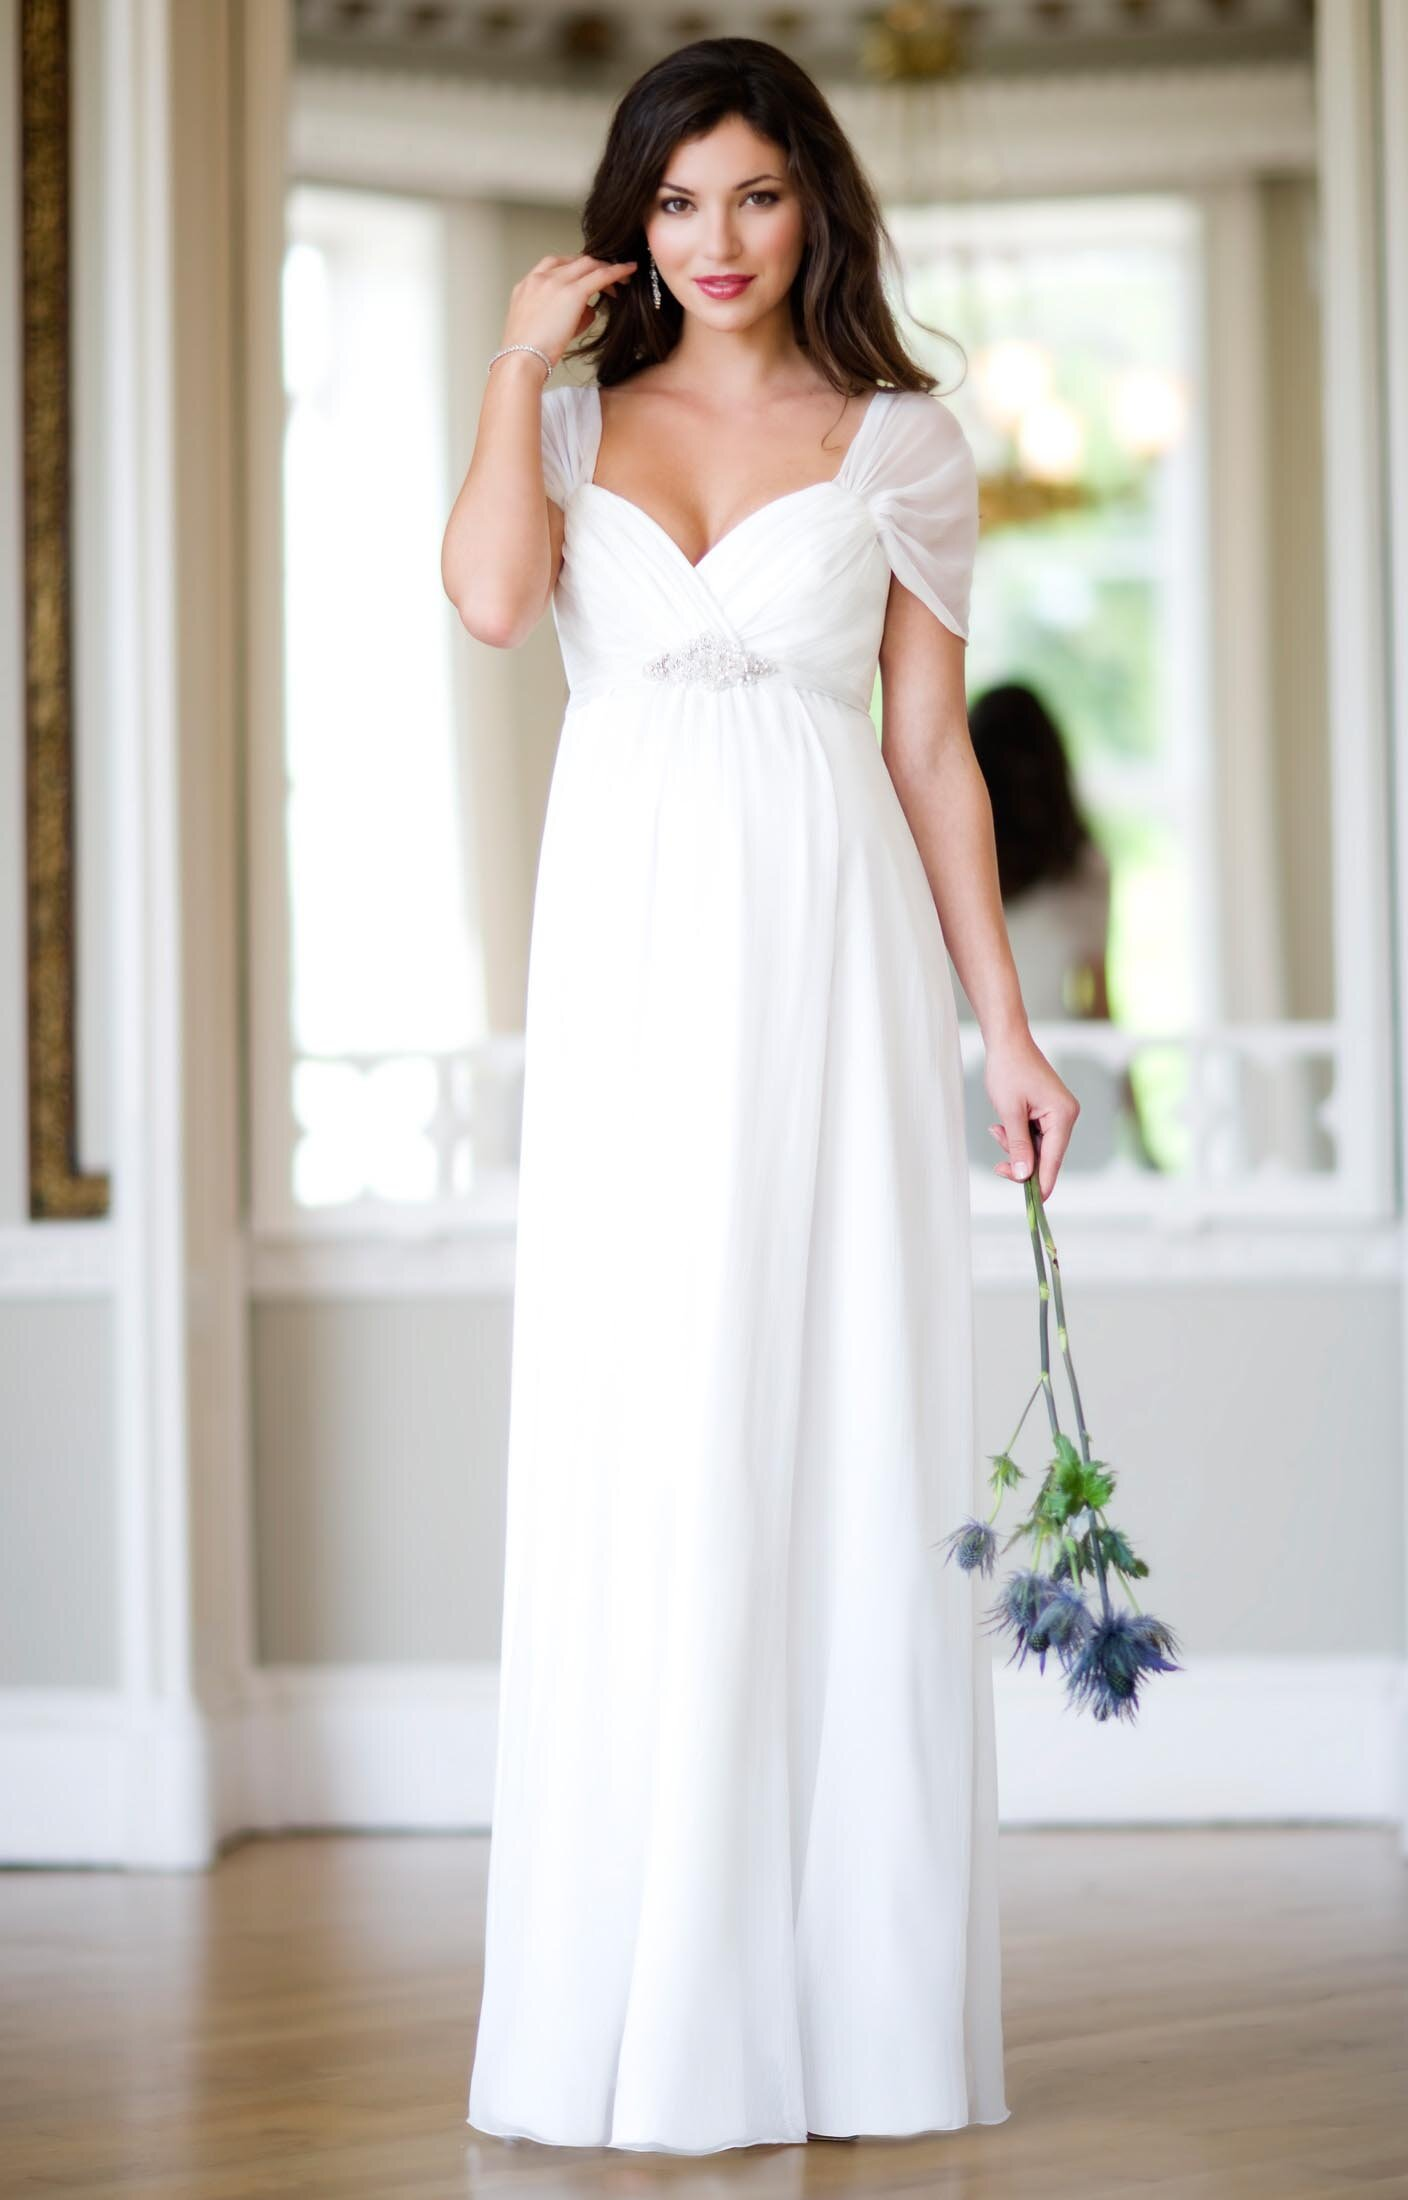 maternity wedding dresses photo - 5